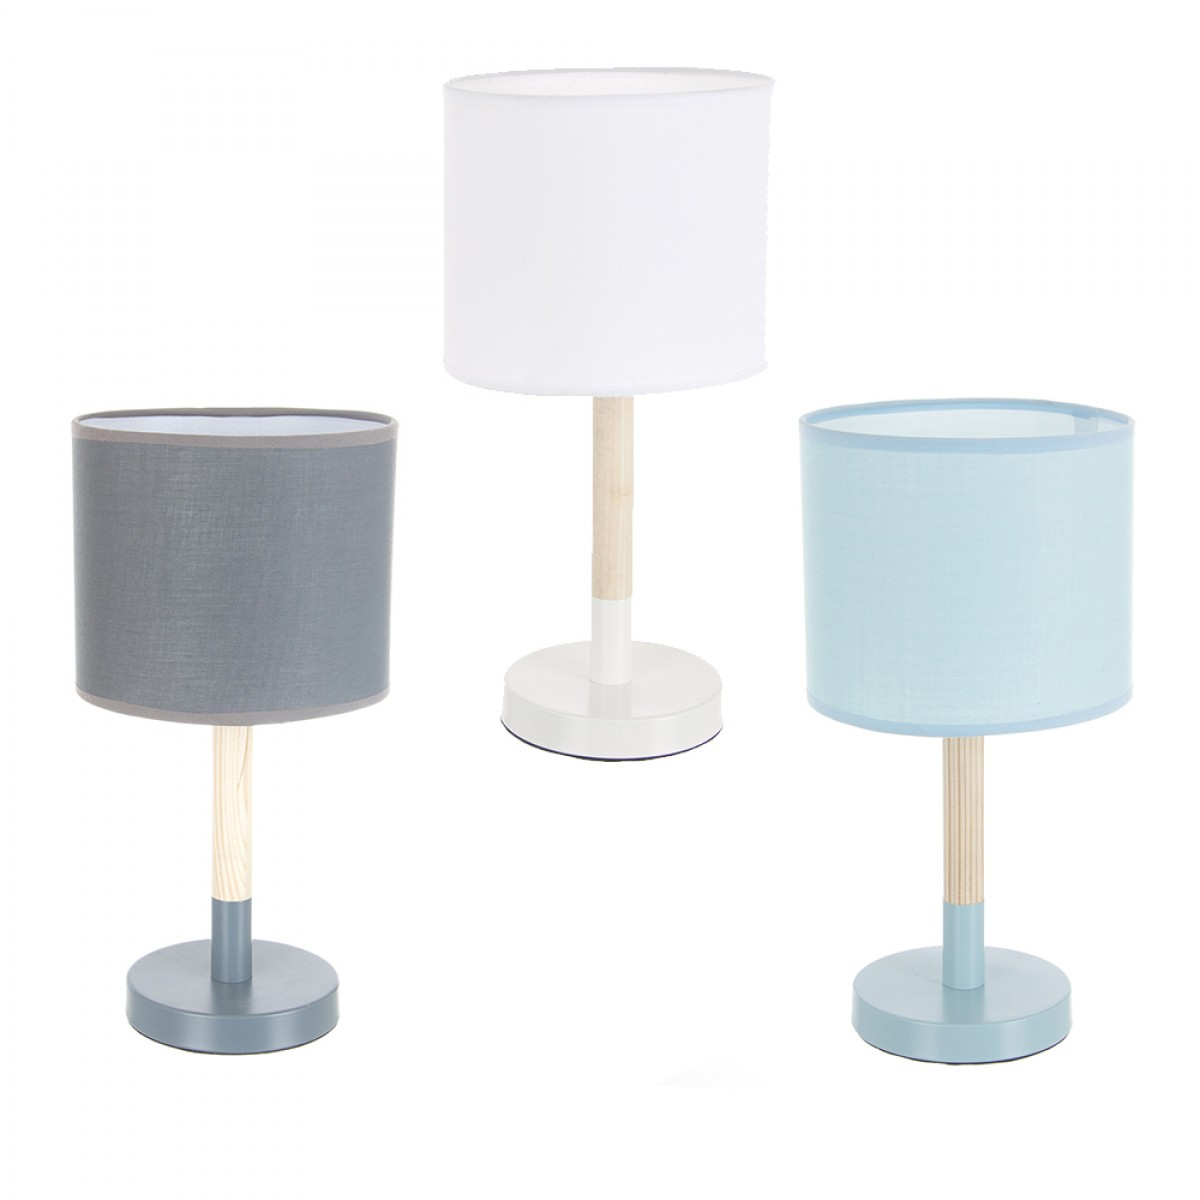 lampe naturelle scandinave bleue les douces nuits de ma linge de maison. Black Bedroom Furniture Sets. Home Design Ideas